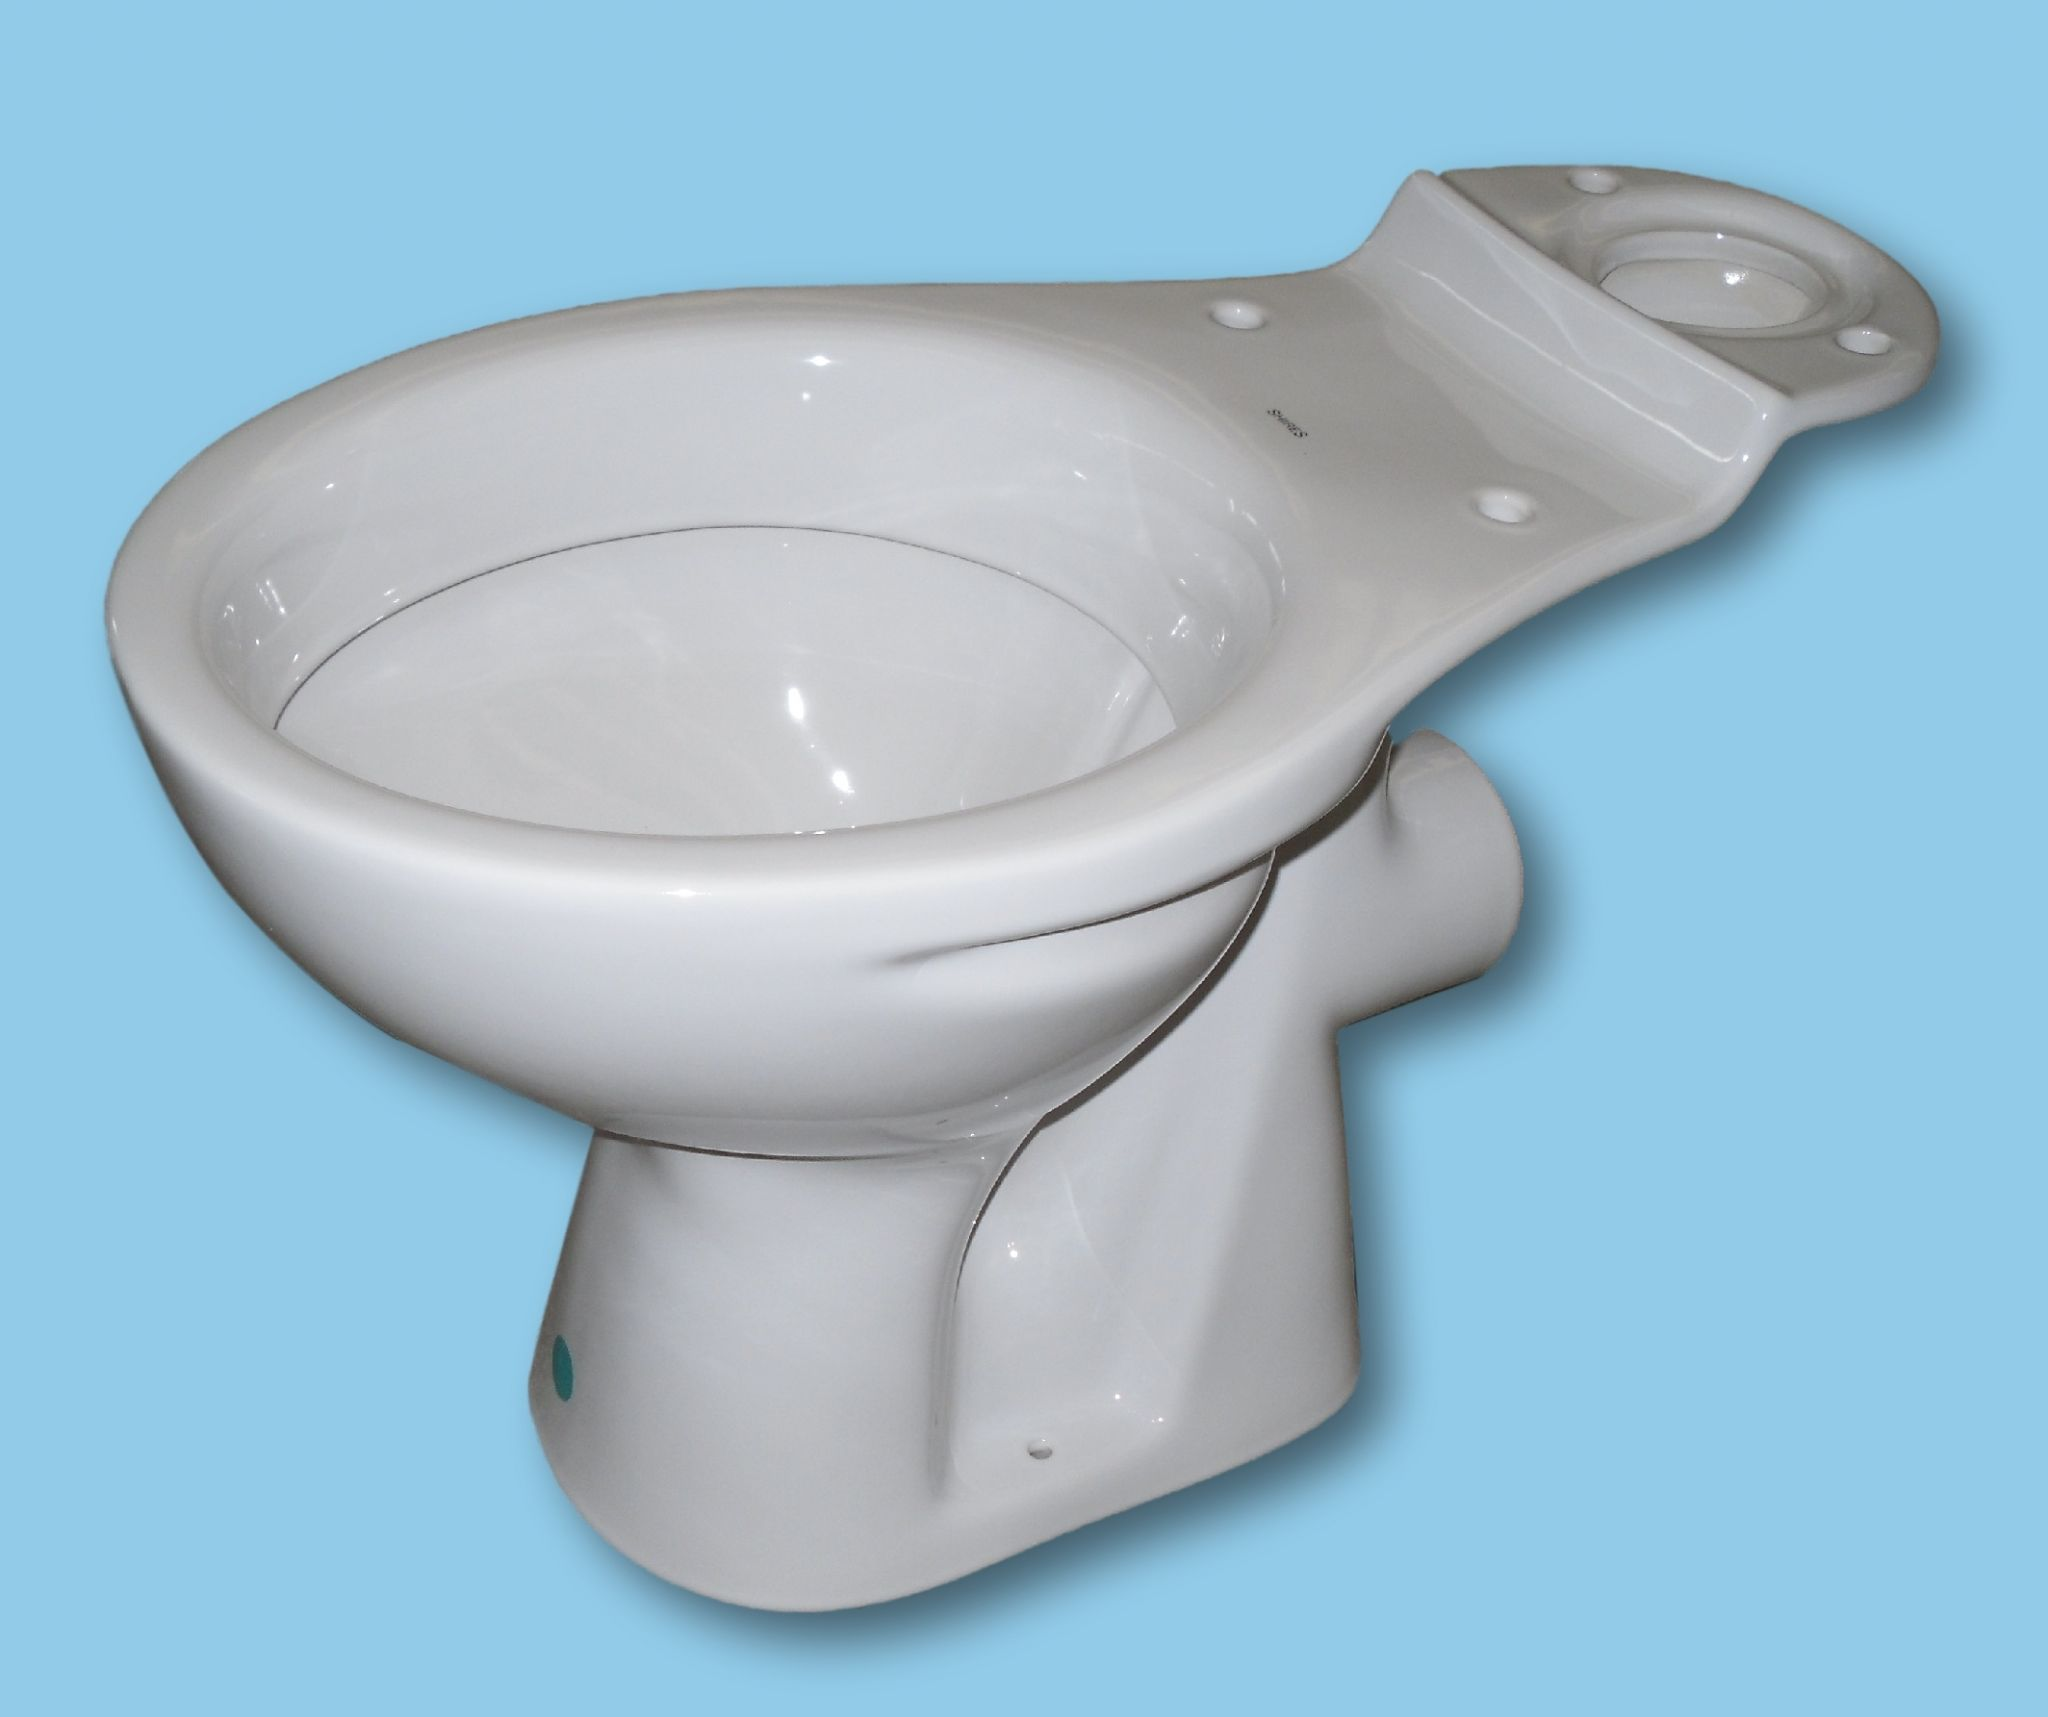 Trent bathroom suites - Trent Bathroooms Johnsons Connaught Replacement Close Coupled Wc Toilet Pan